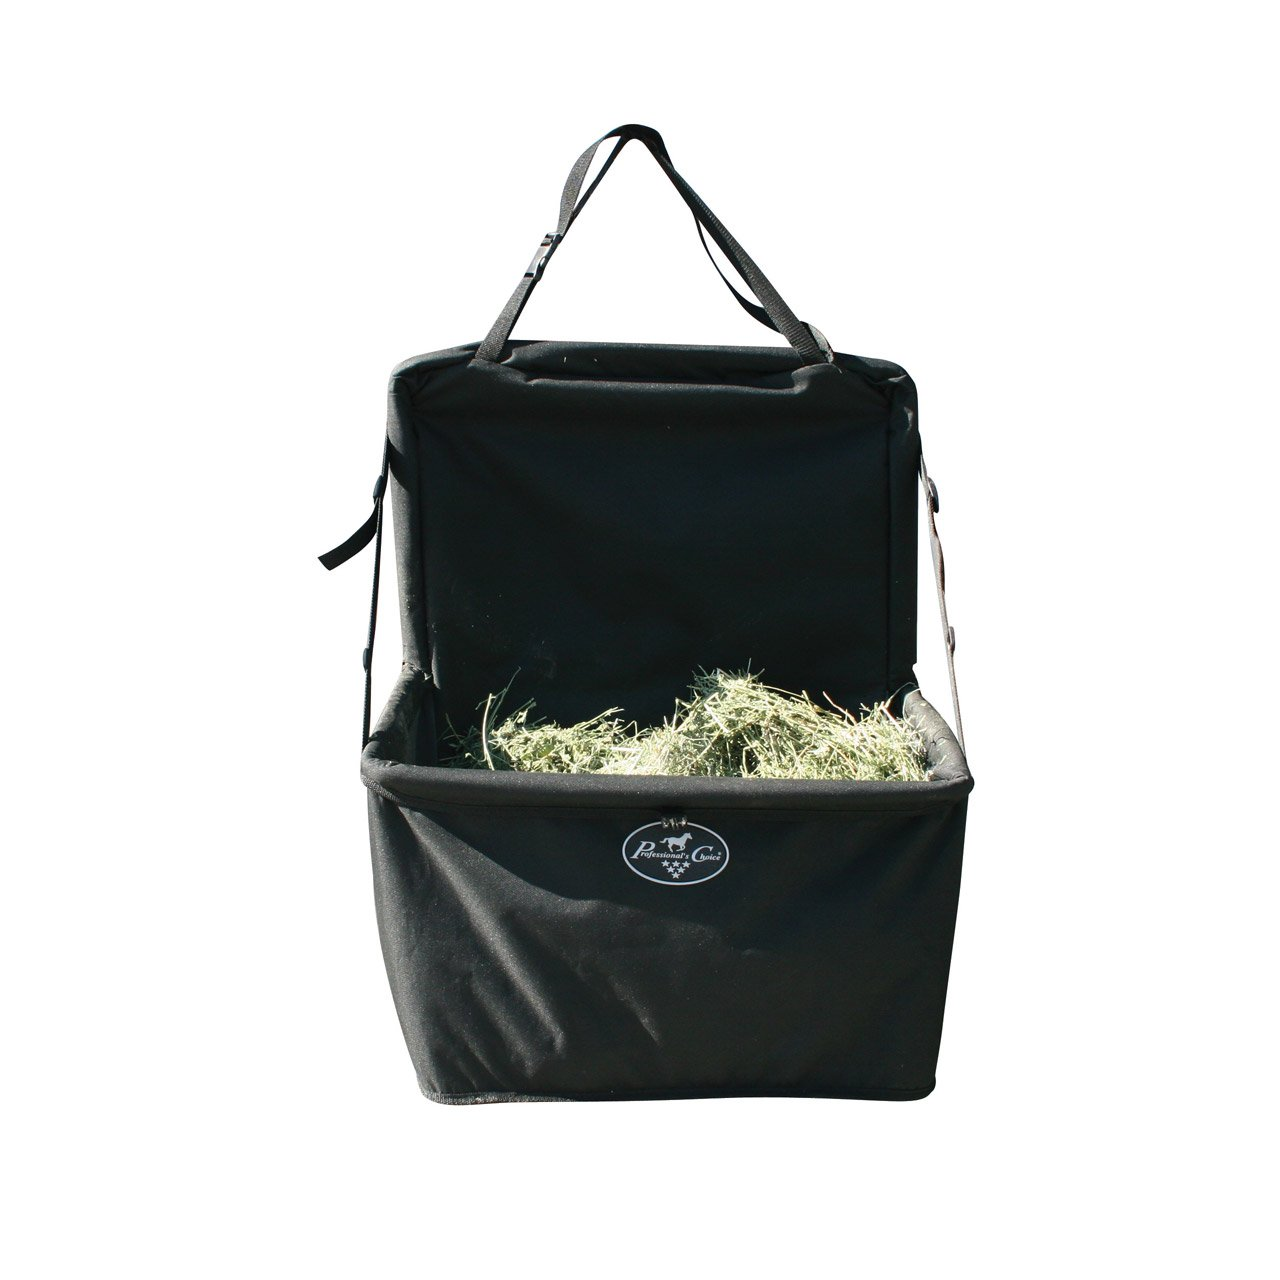 Professional's Choice 14X24X14 Equine Folding Combo Feeder Bag (Black)